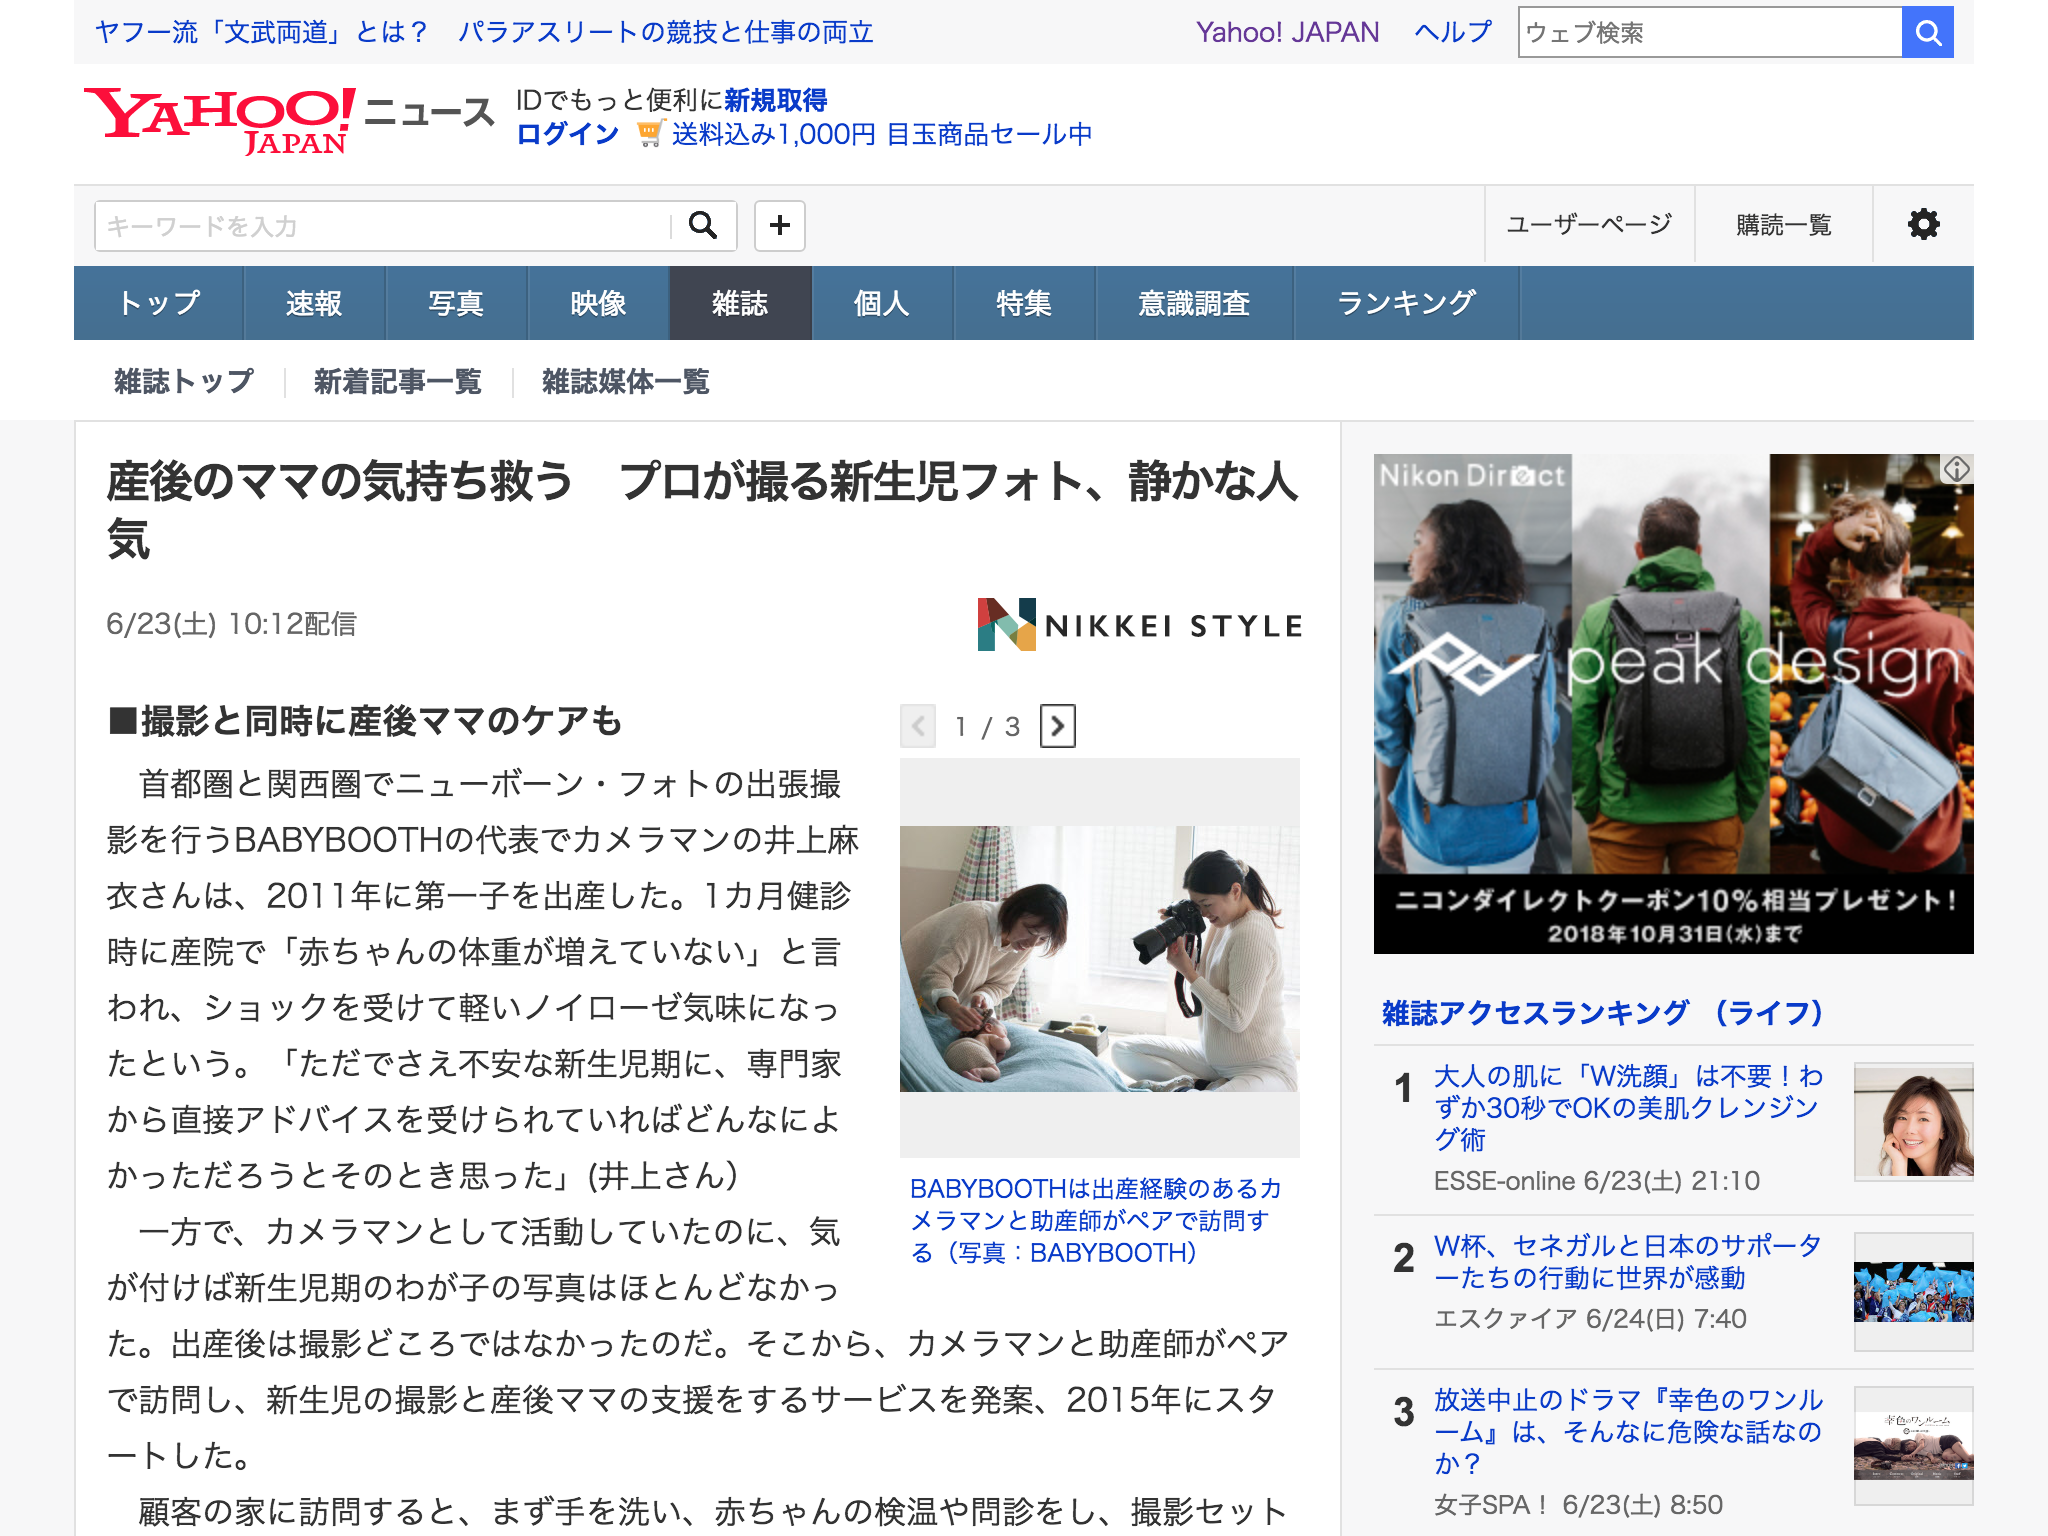 headlines.yahoo.co.jp_article_a=20180623-00000009-nikkeisty-life&p=2(iPad)